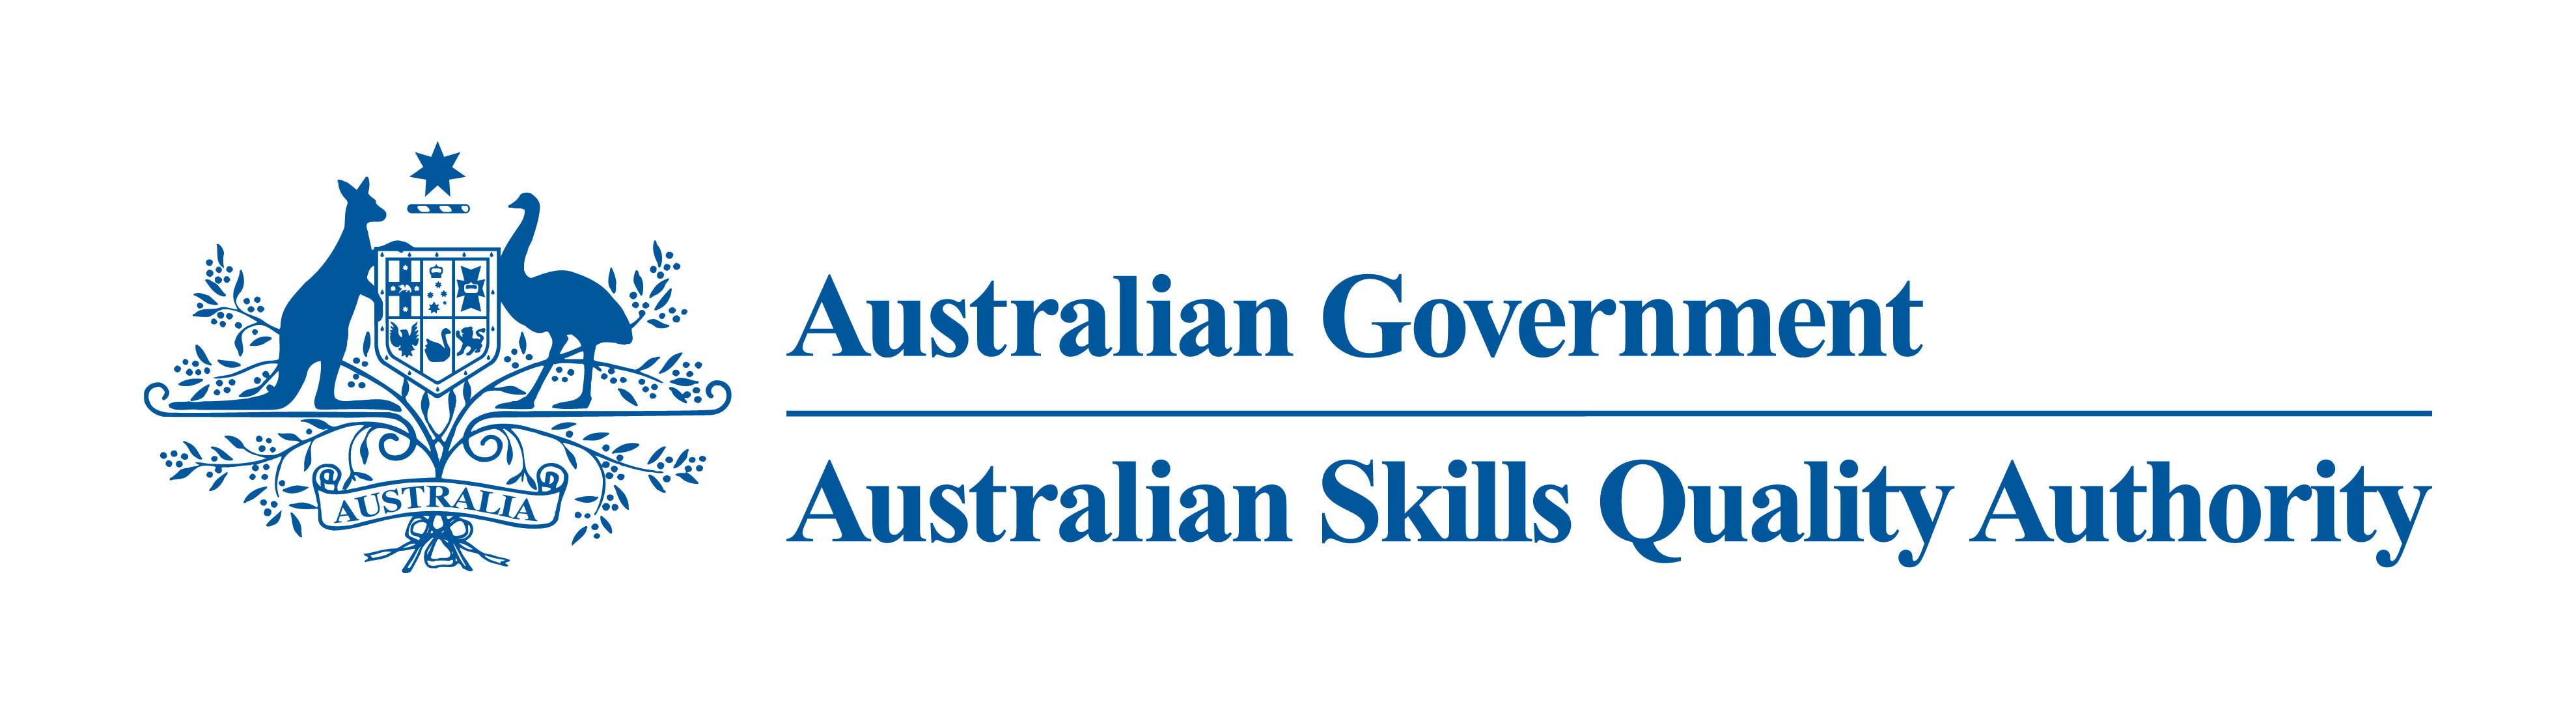 Australian Skills Quality Author